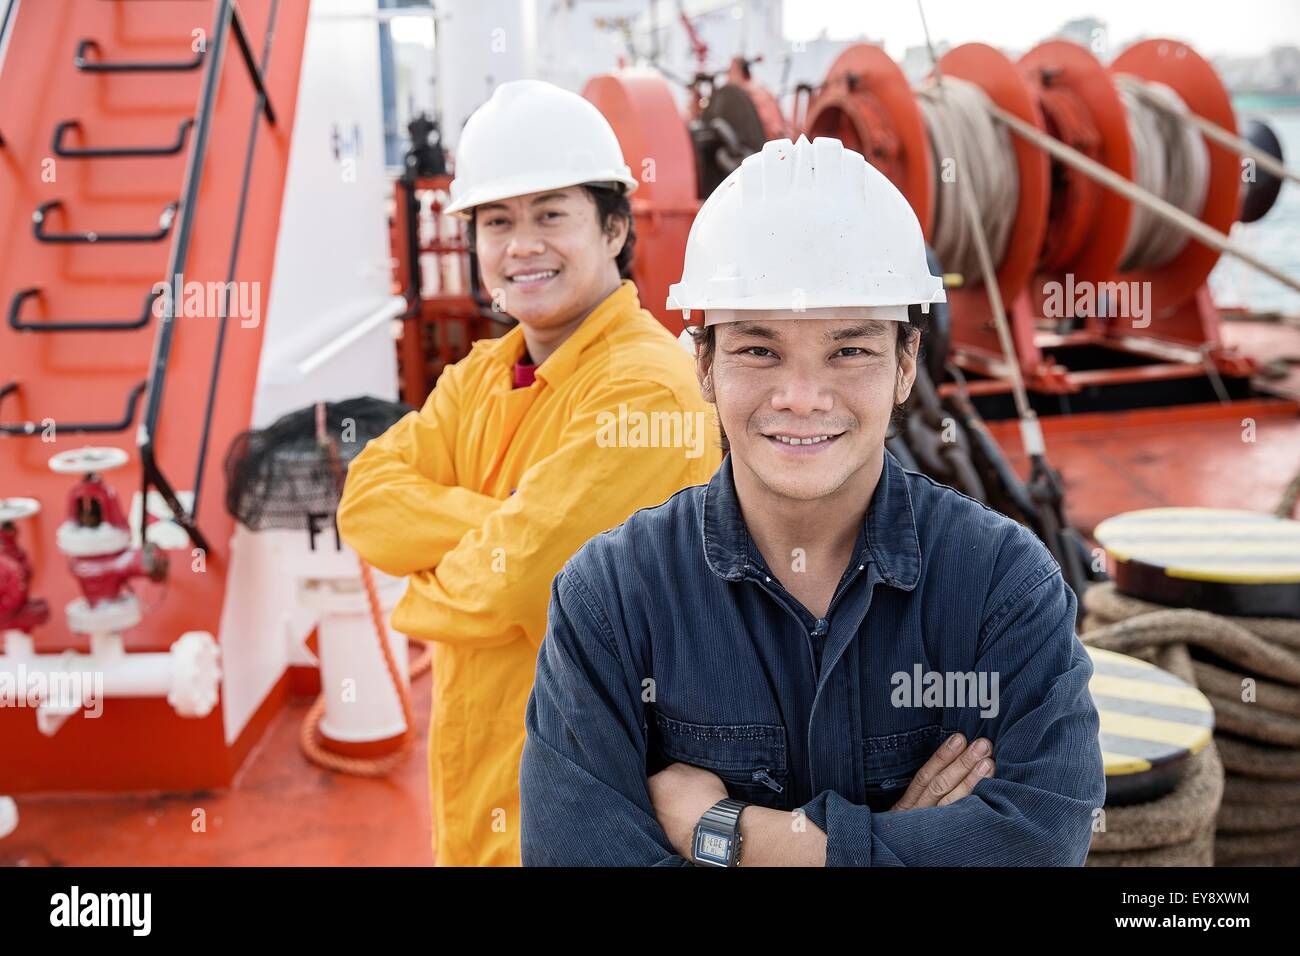 Portrait of workers on oil tanker - Stock Image